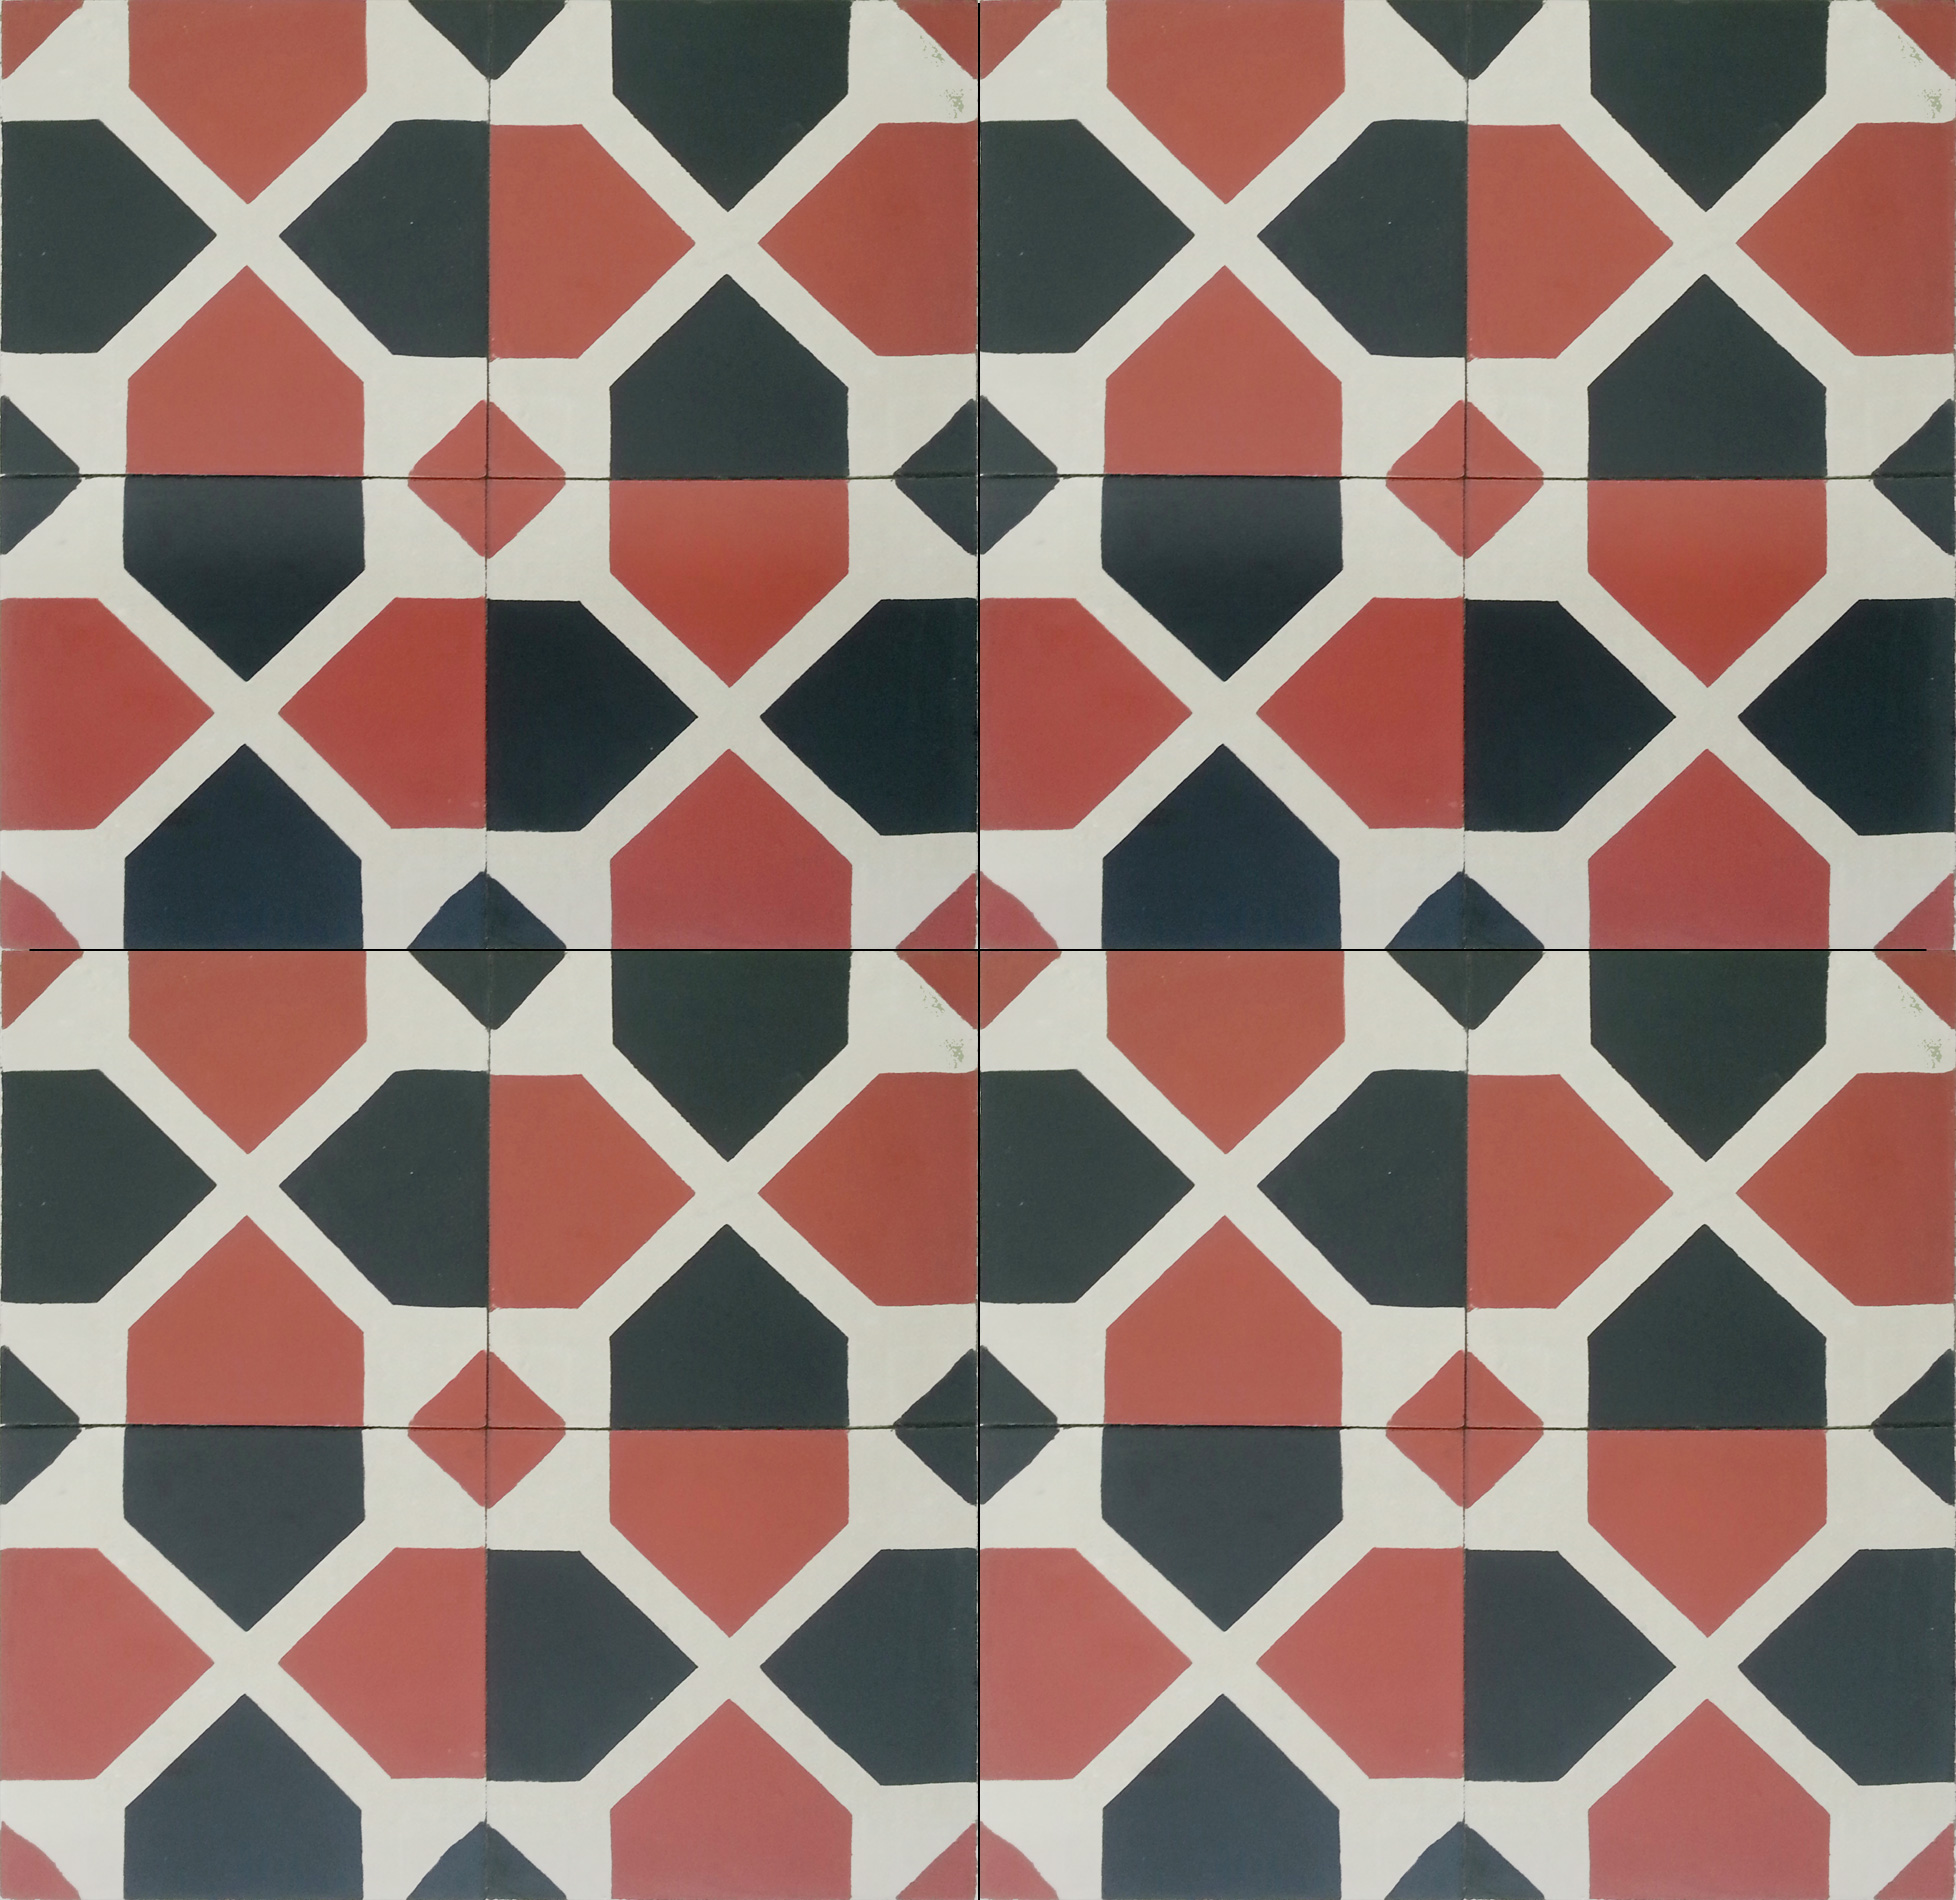 Mosaic House Moroccan tile Bordeaux C10-4-38 Brick Red Black Slate, gray  cement, encaustic, field, pattern